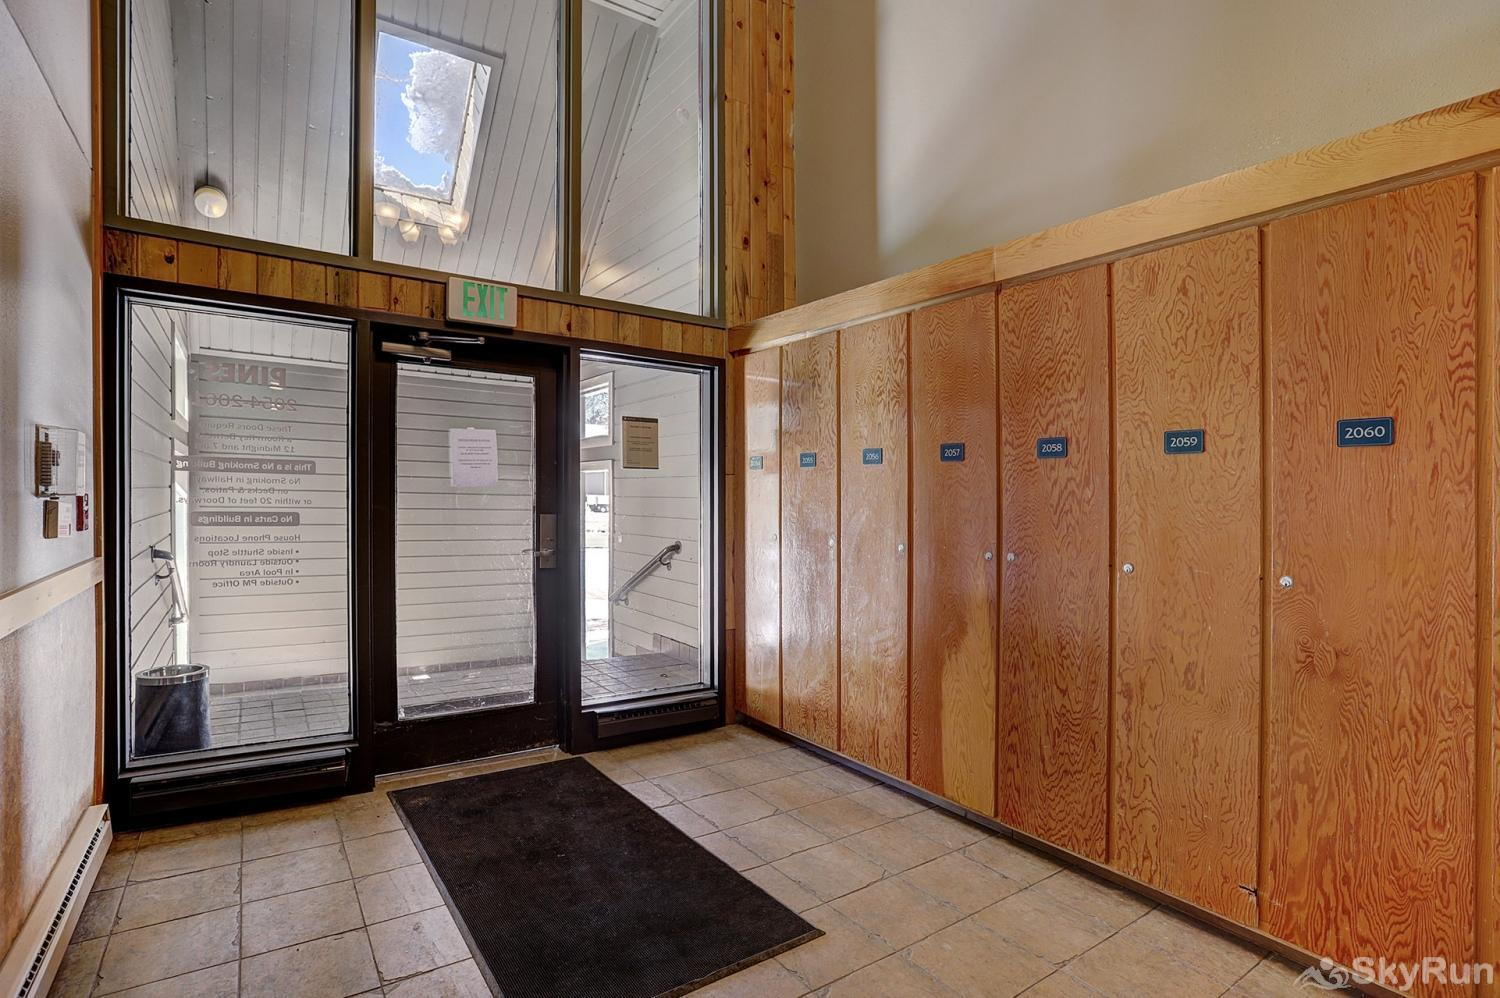 2061 The Pines Building Entrance/Ski Lockers